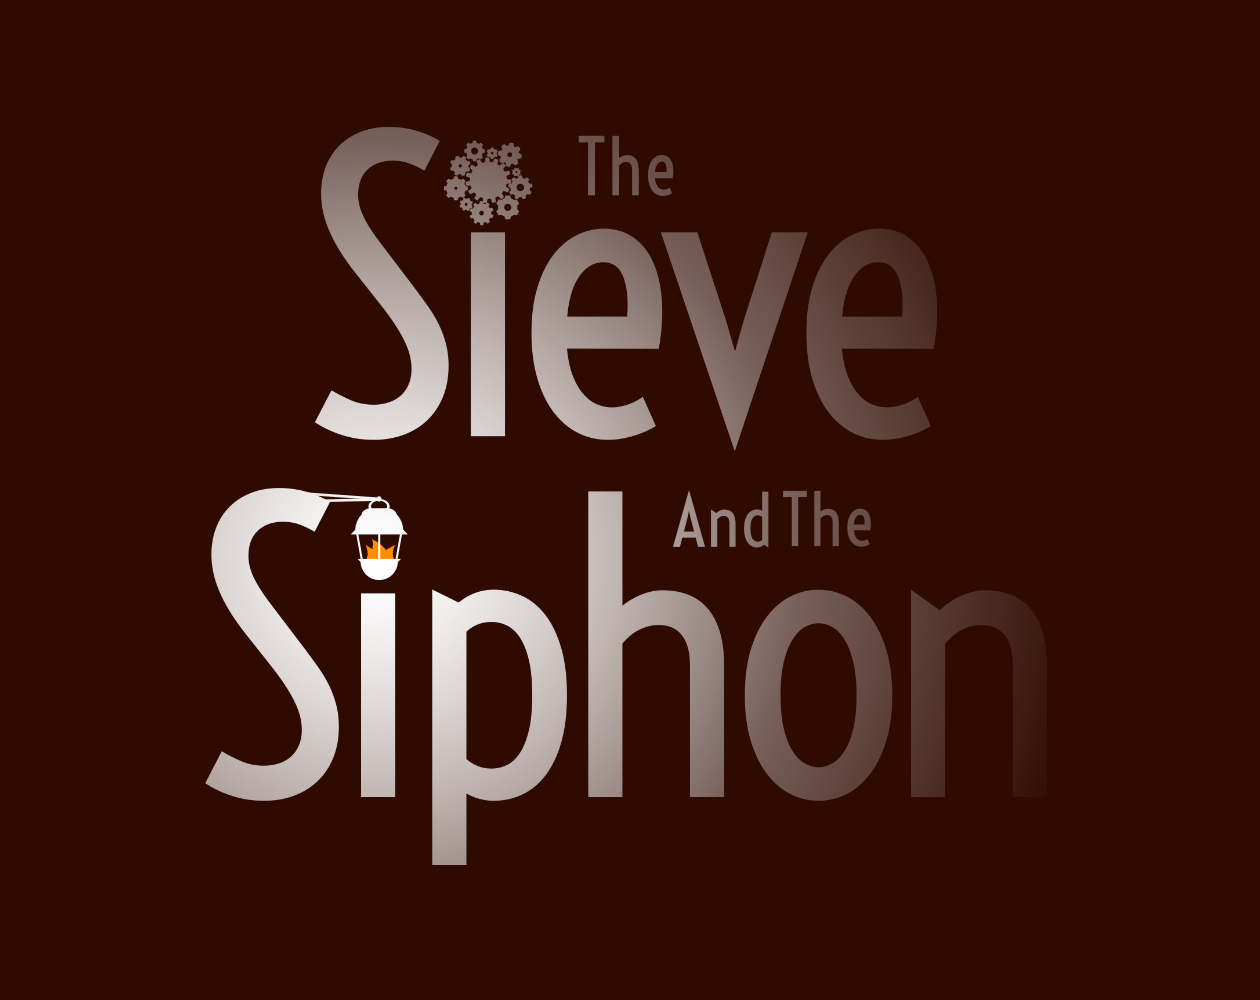 [The Sieve and the Siphon](https://enmod.itch.io/the-sieve-and-the-siphon)